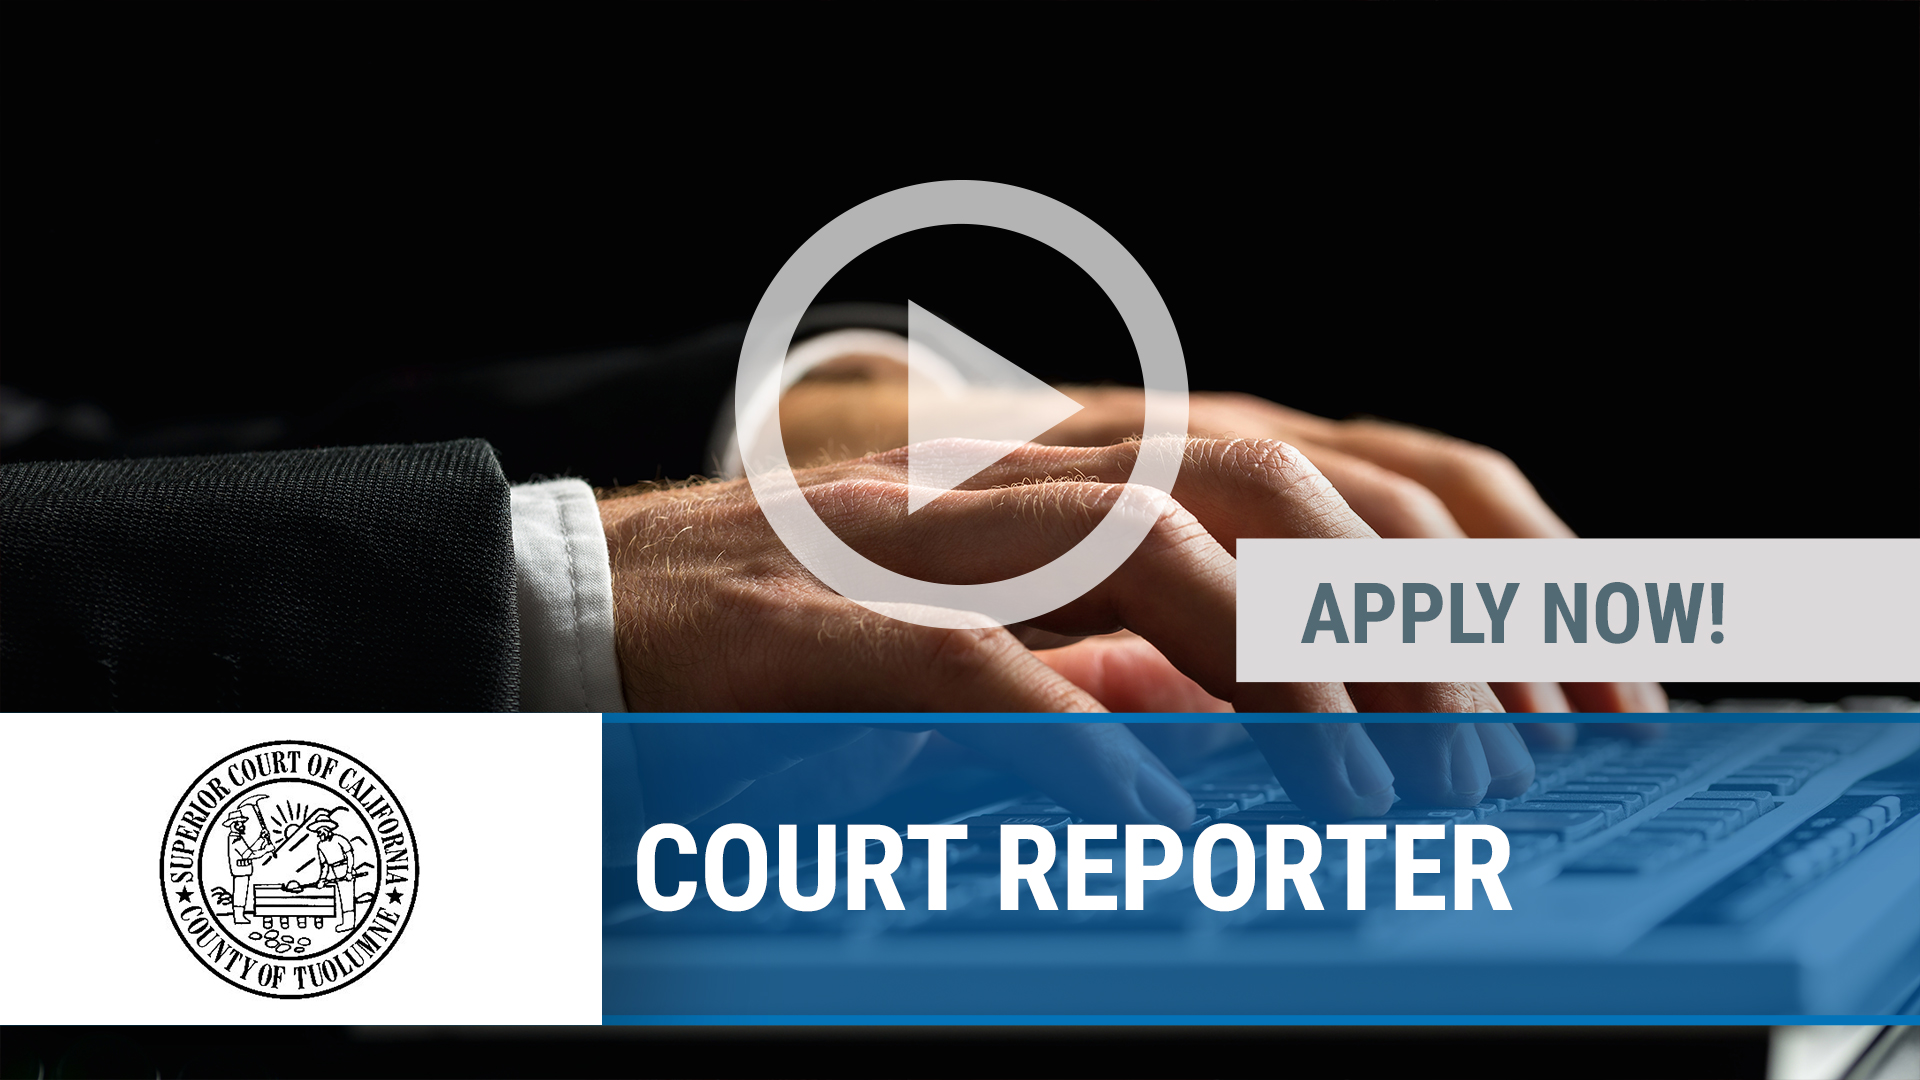 Watch our careers video for available job opening COURT REPORTER in SONORA, CA